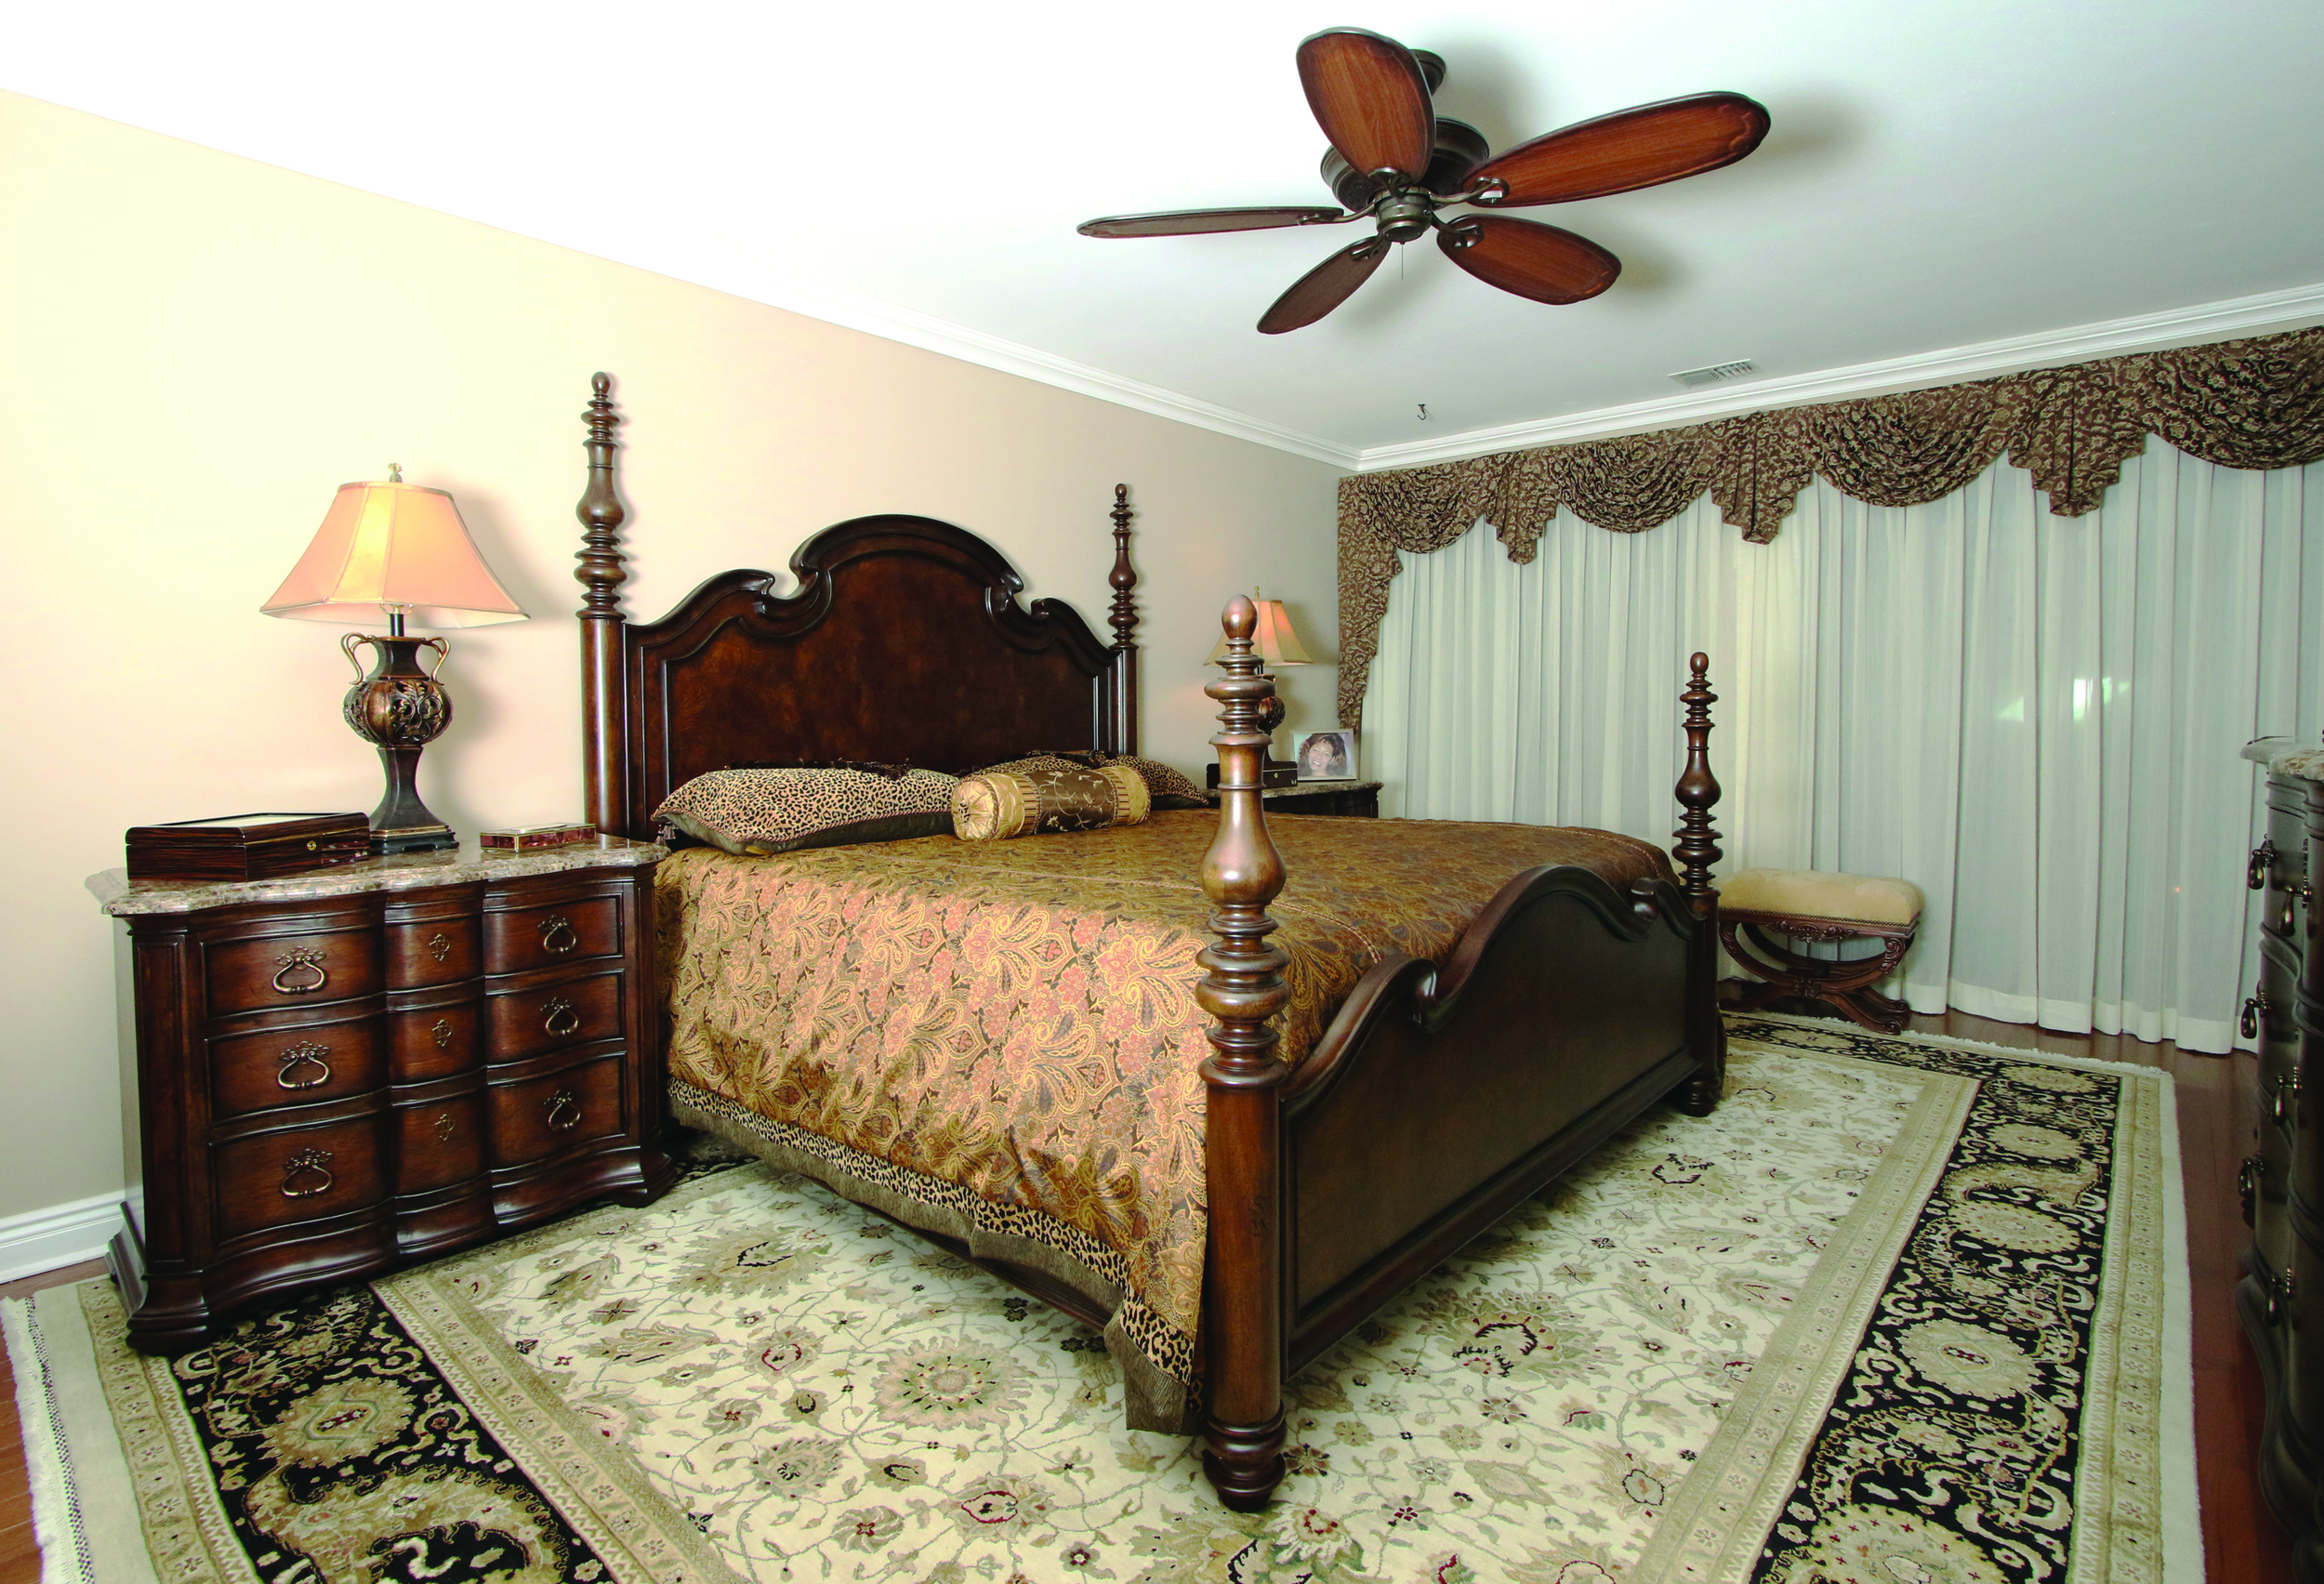 Thomasville furniture enhances a classic bedroom where a Peykar rug adds pattern while keeping with the serenity of the space.